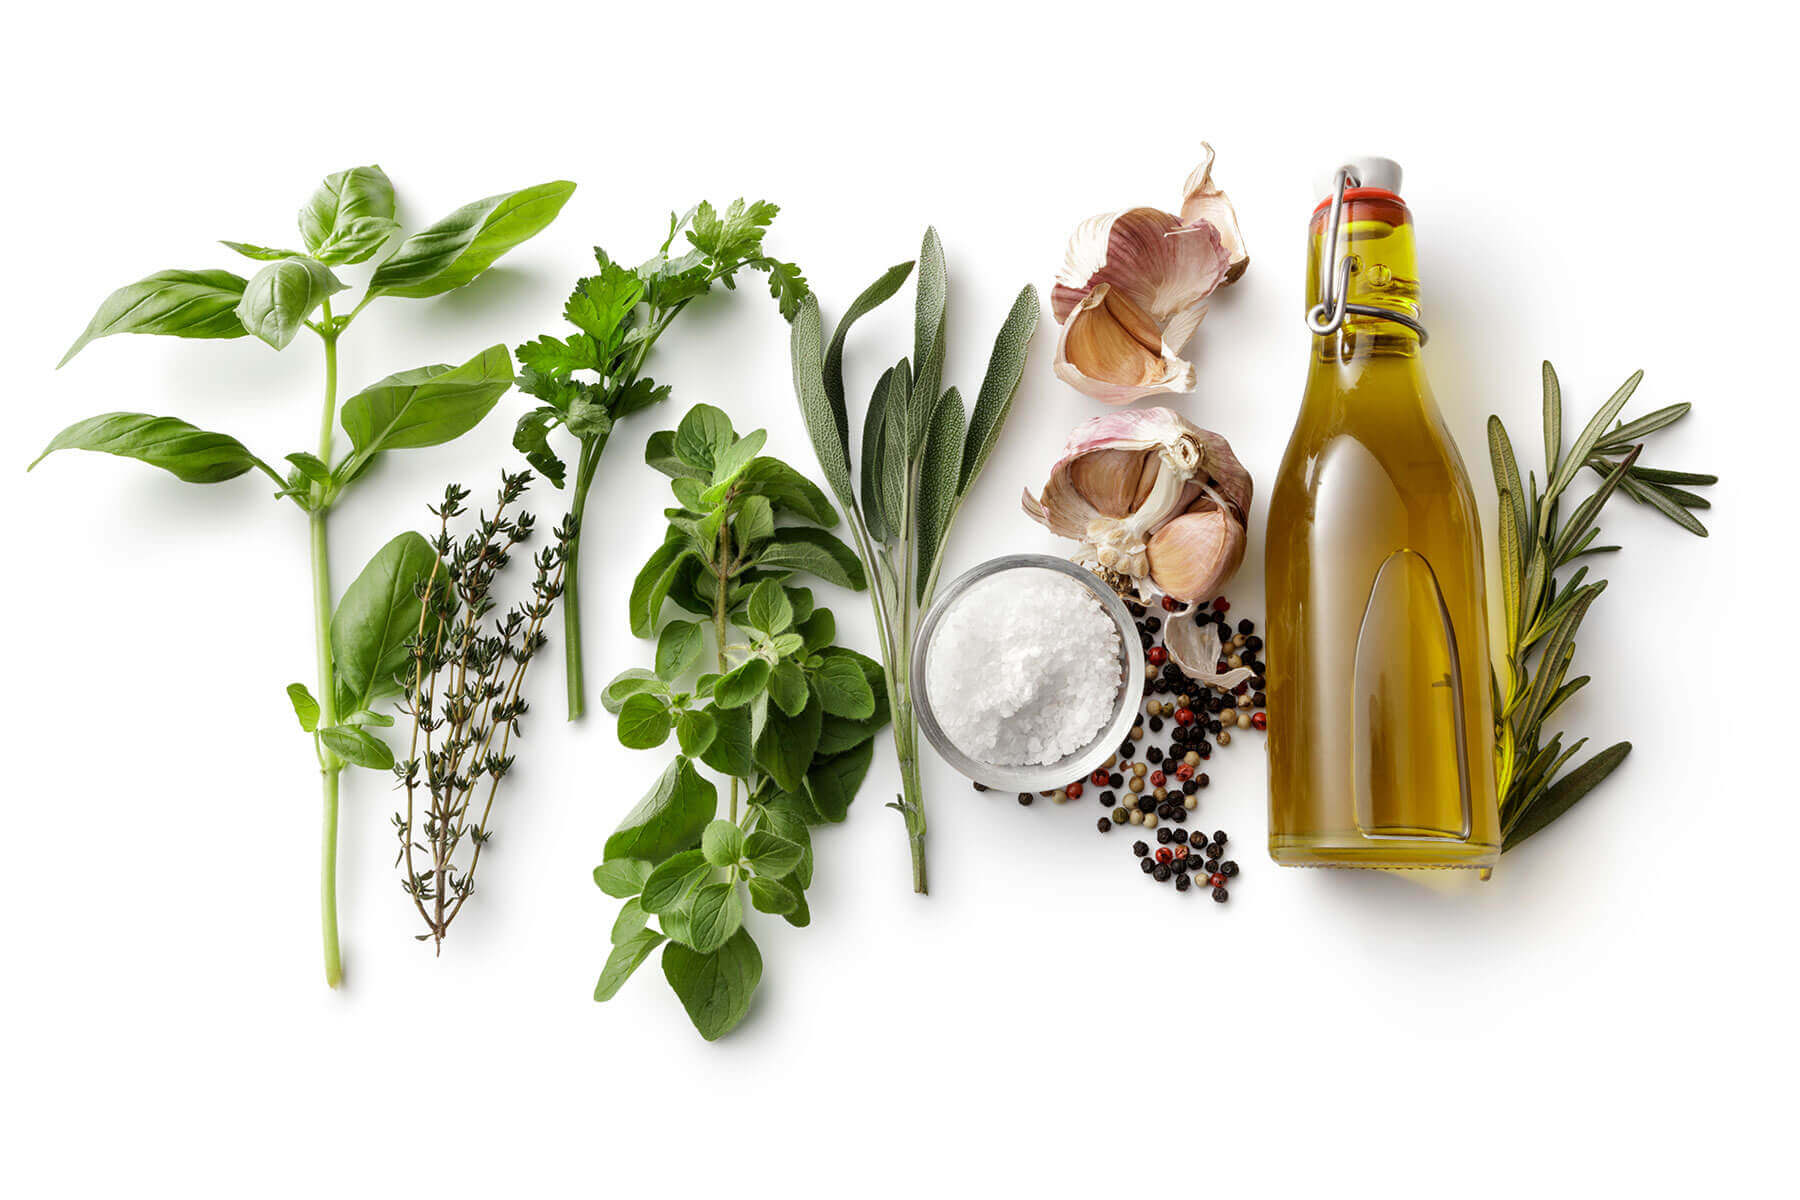 Ingredients on a white background